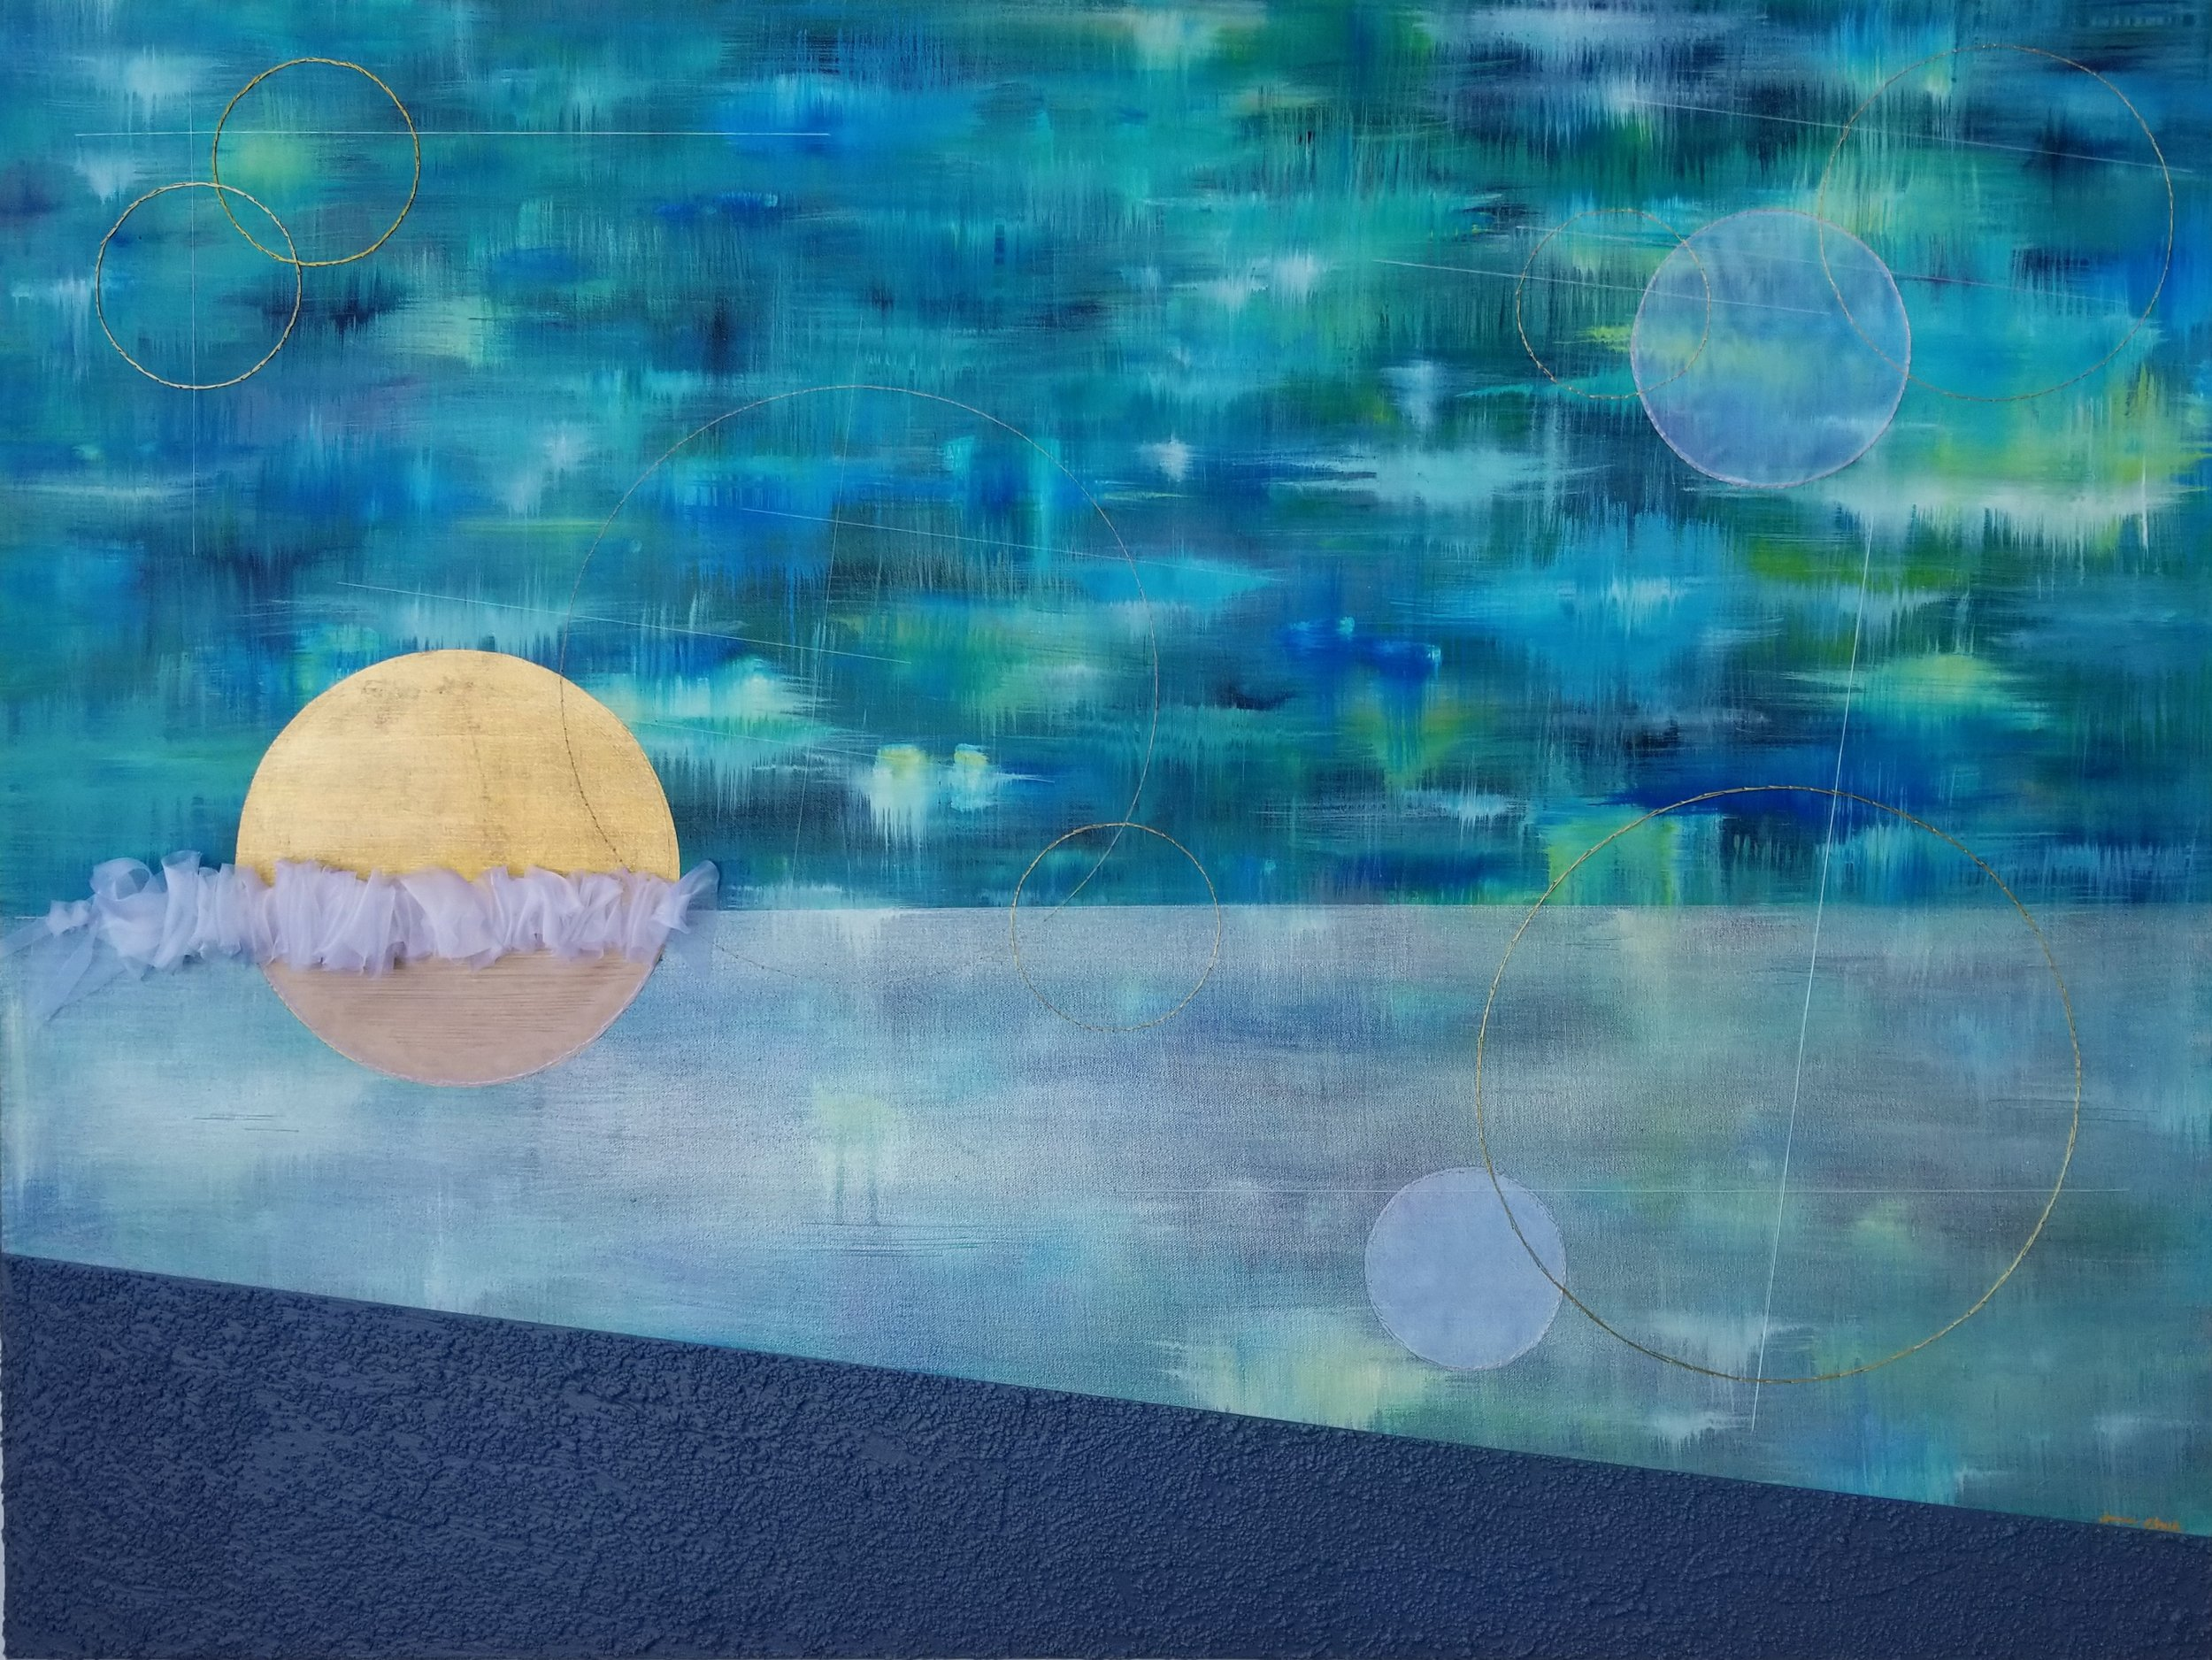 Ebb + Flow - A exhibit of works inspired by the sea, turning tides, and the dichotomy of the human experience